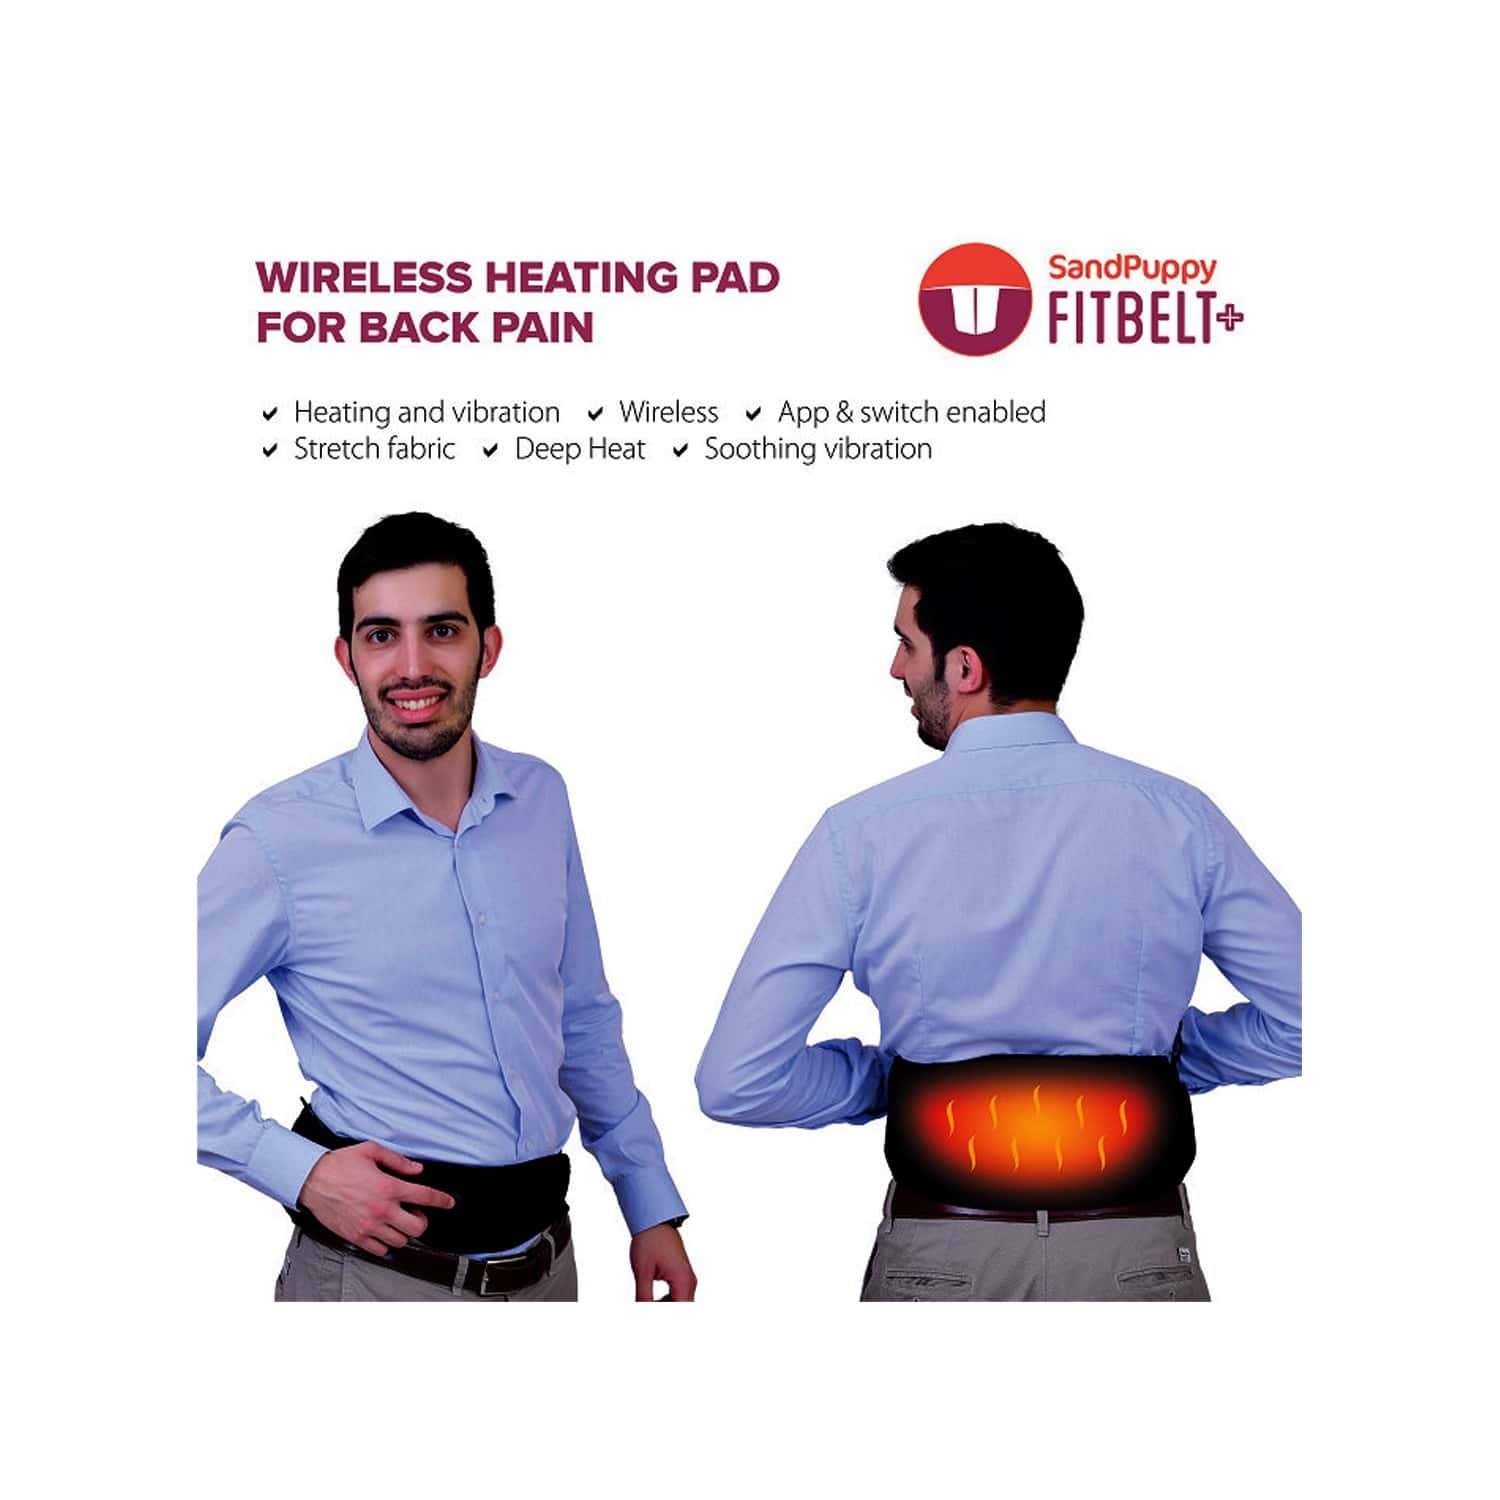 Sandpuppy Fitbelt Plus Portable Wireless Electric Heating Belt For Back Pain Relief - Smartphone App Based Control (micro-vibration Feature)